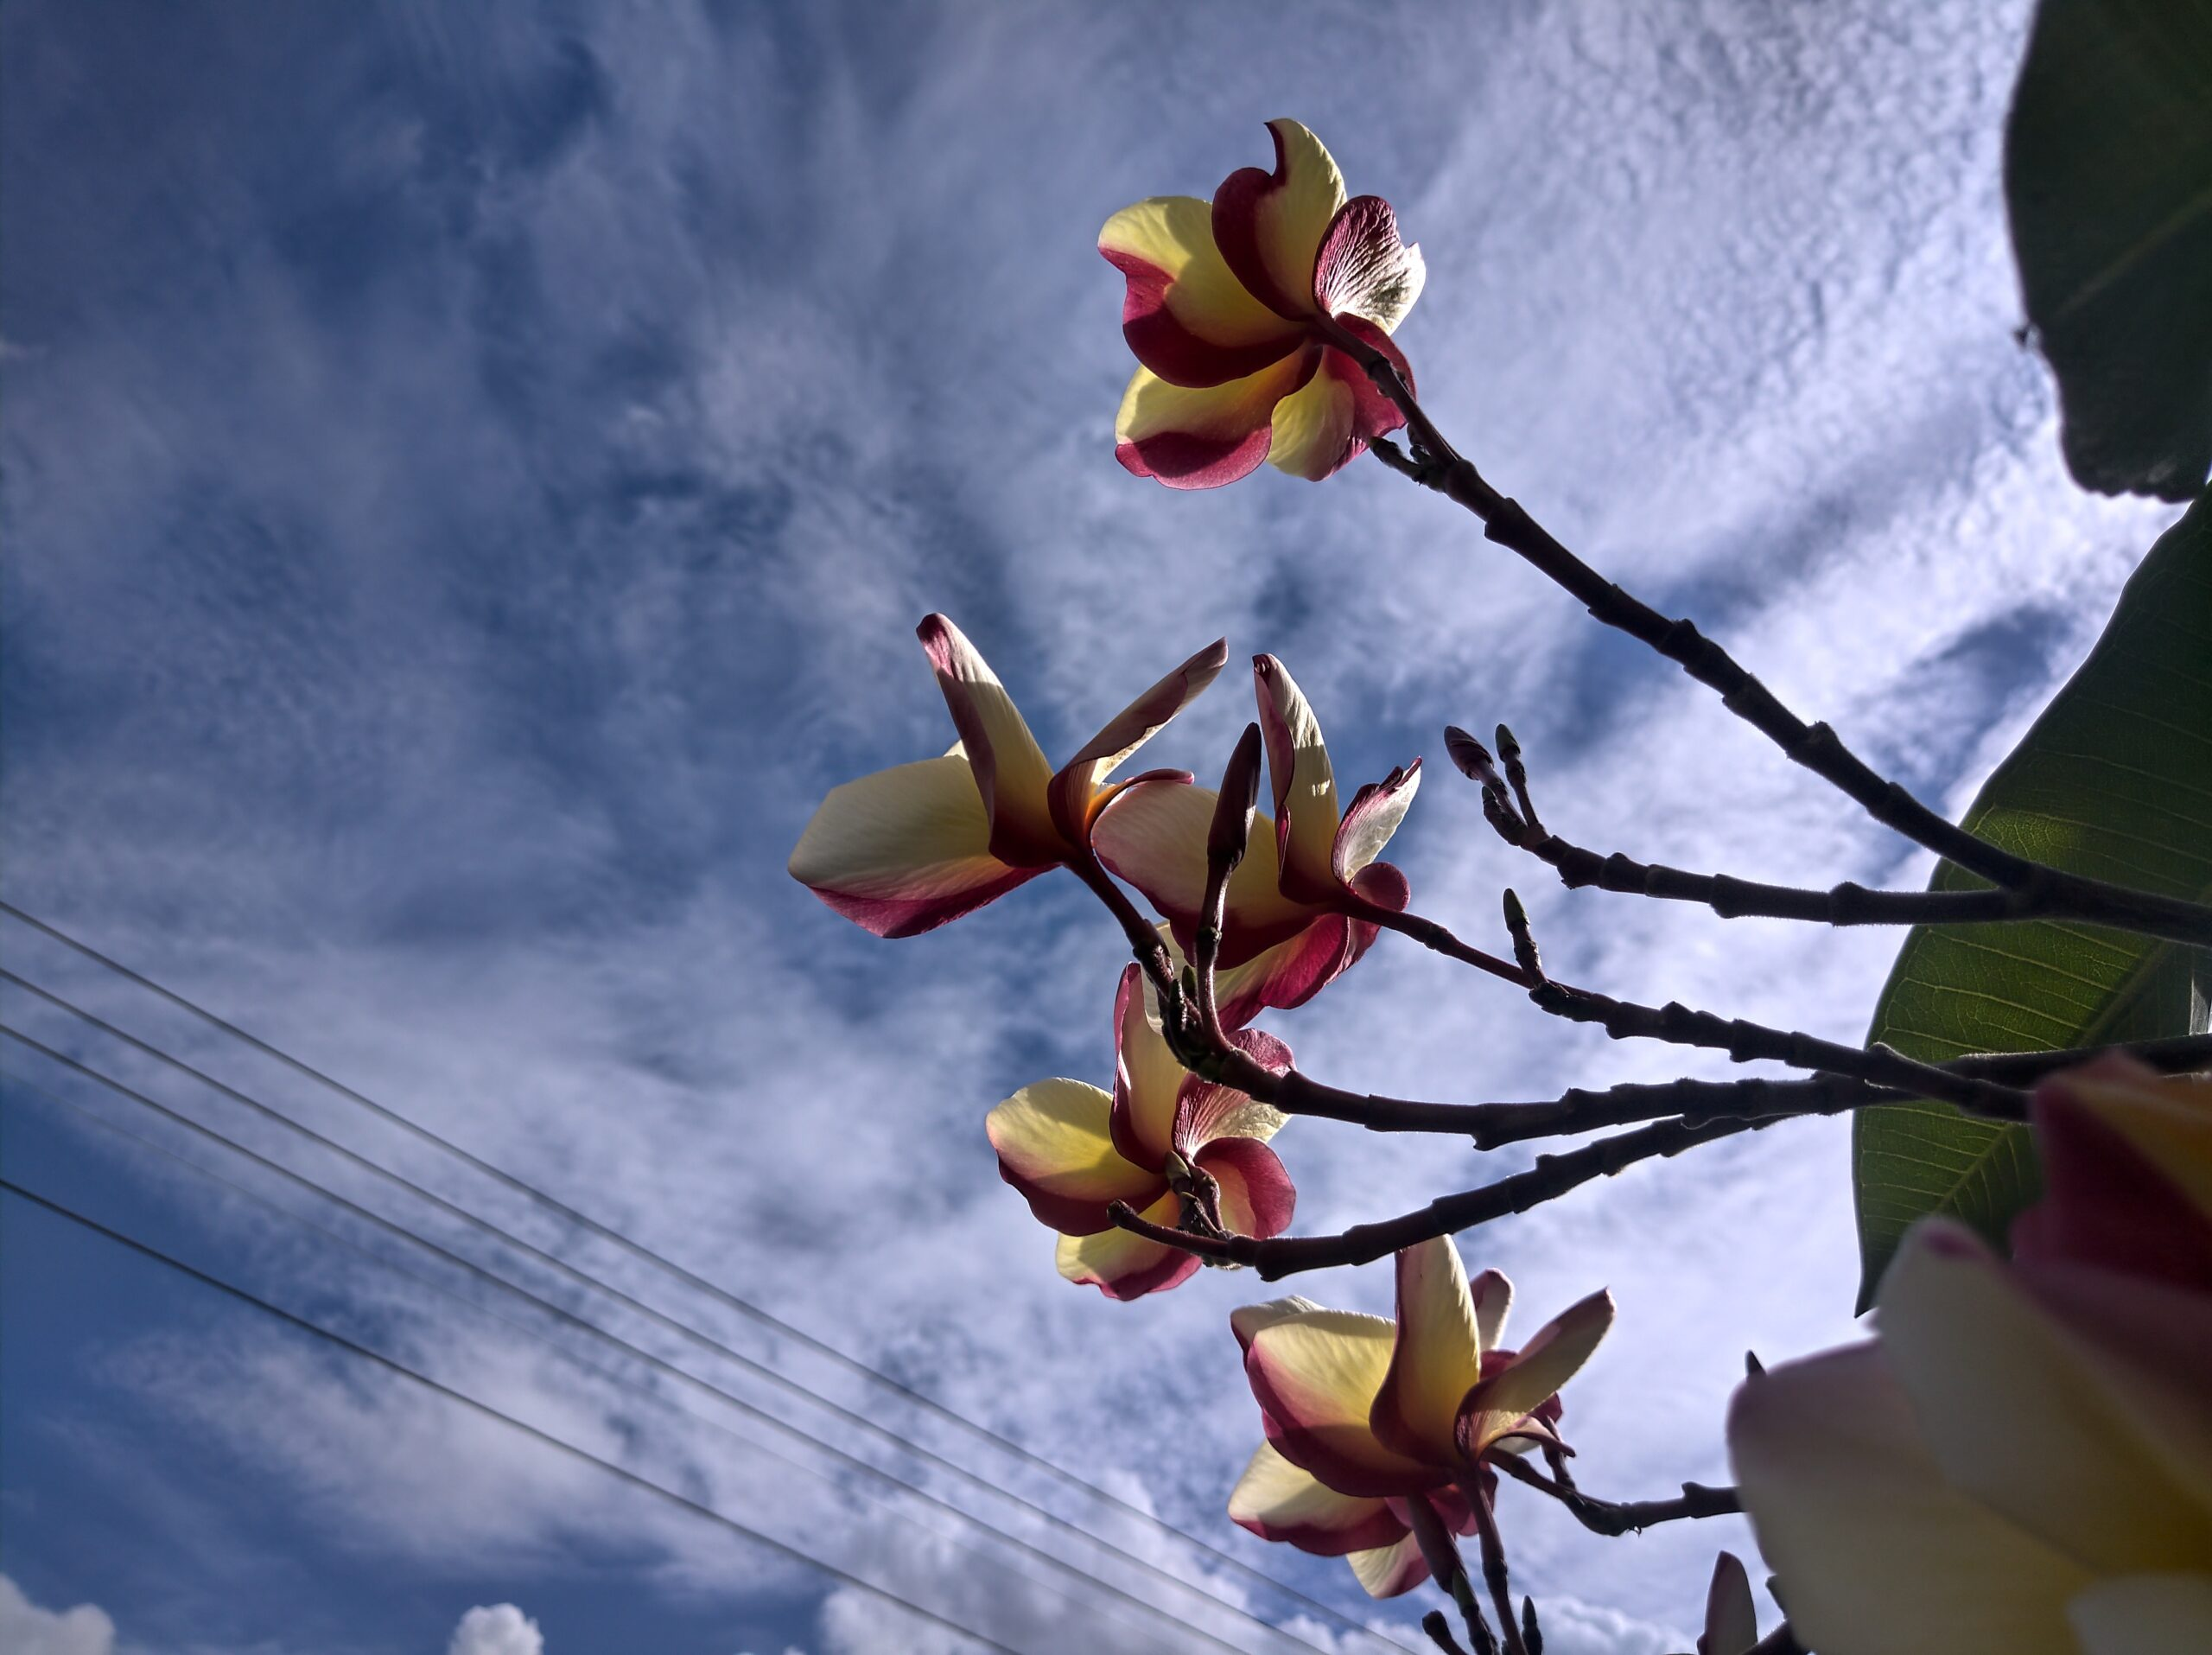 A picture containing sky, plant, several Description automatically generated